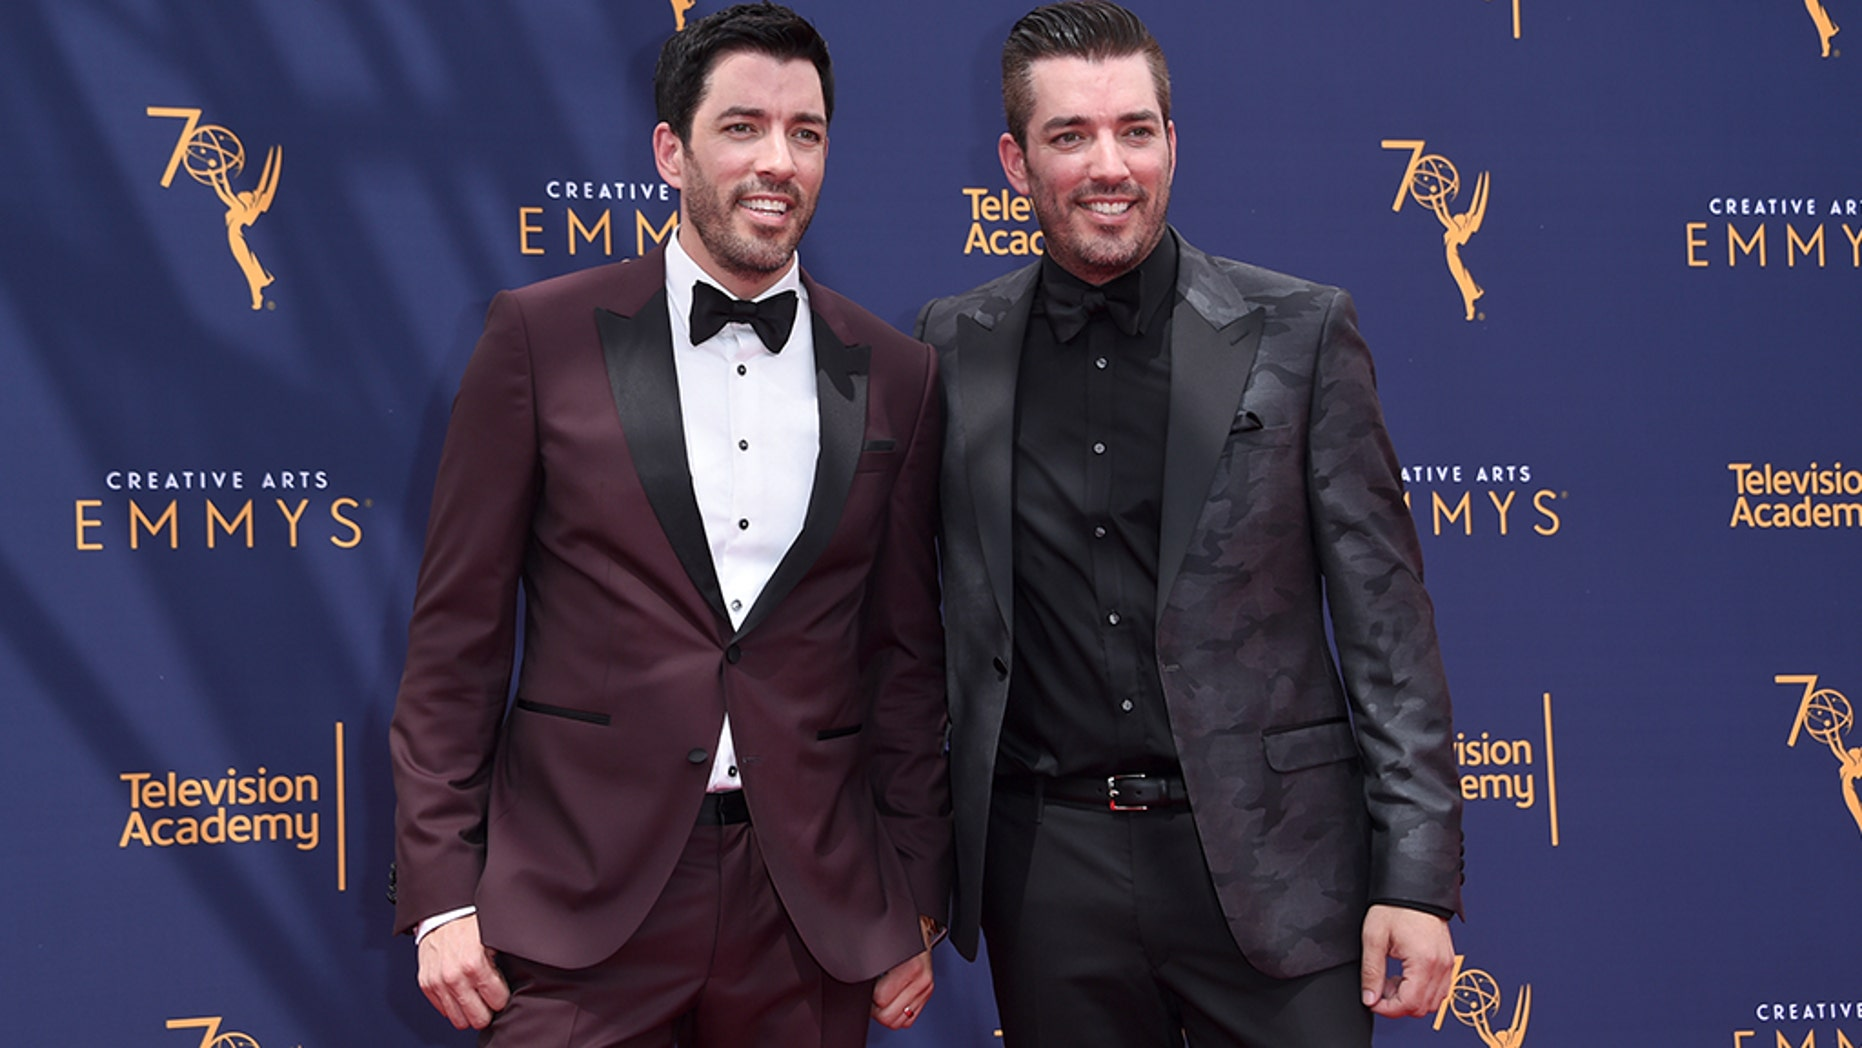 Who are the property brothers dating 2018